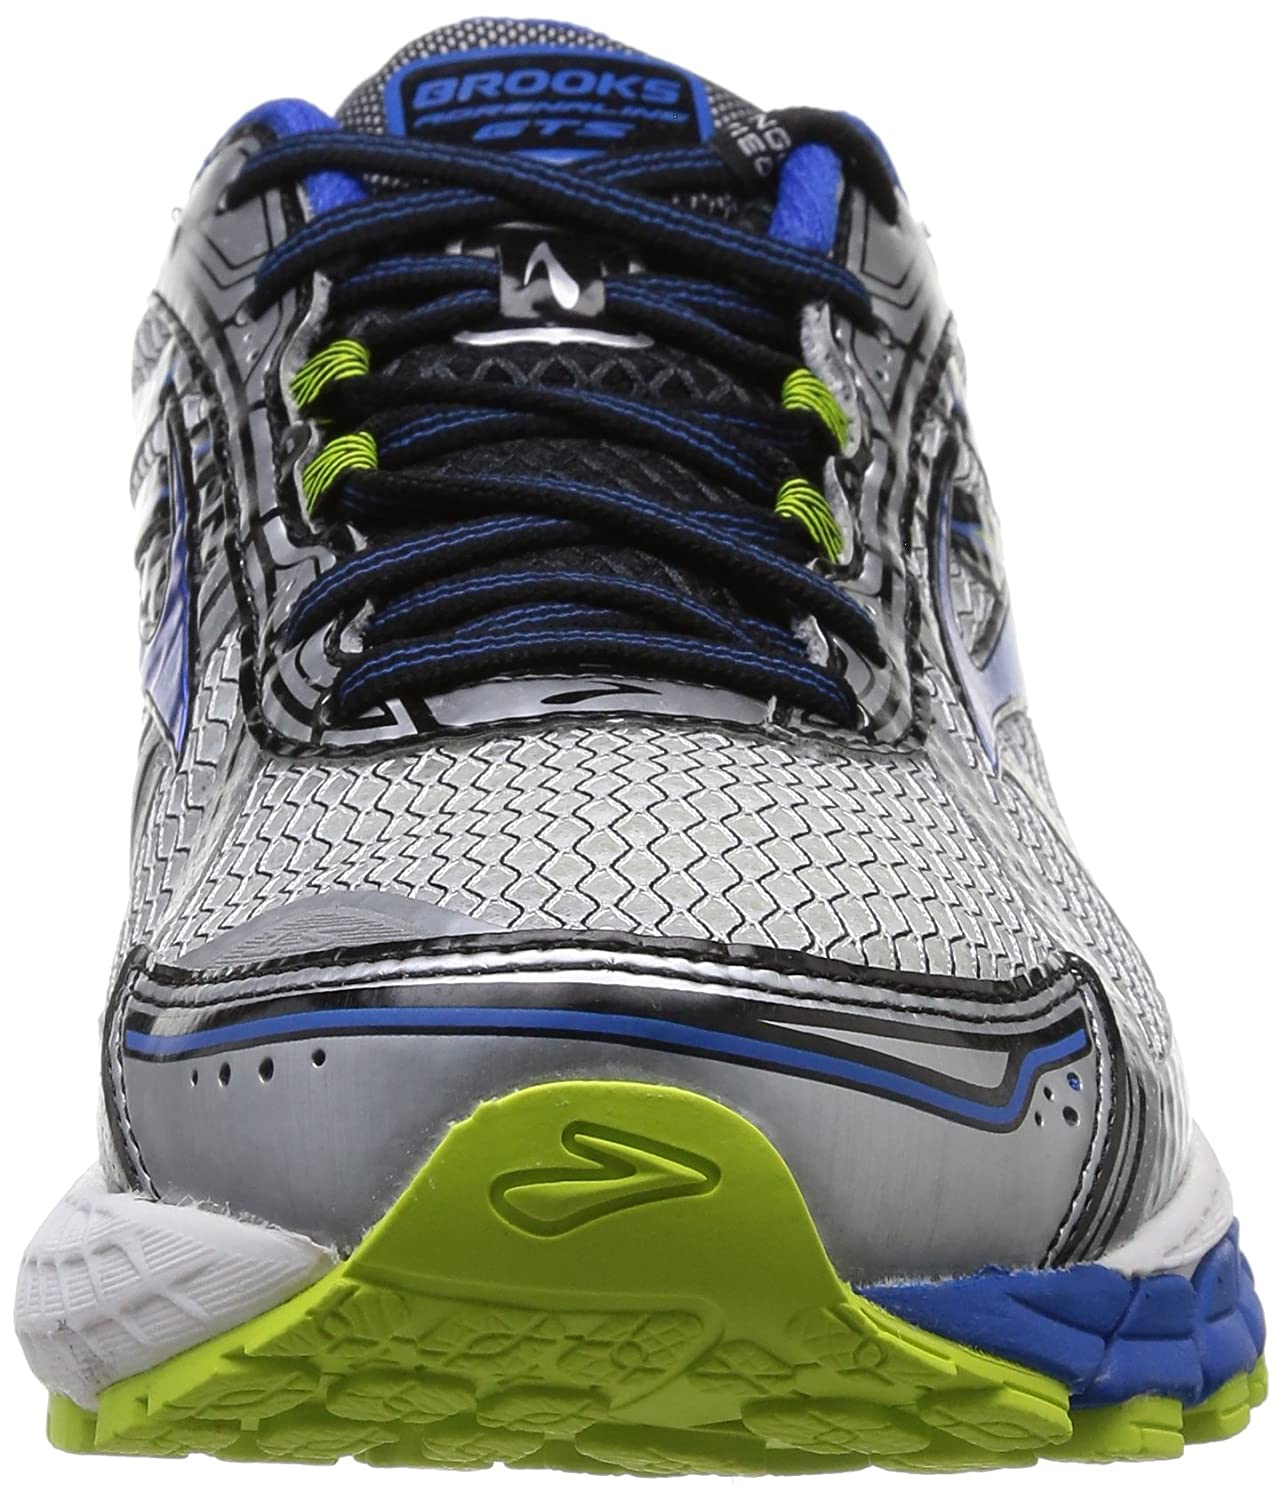 cc773b5d8013b Brooks Men s Adrenaline GTS 15 White Olympic Lime Punch Athletic Shoe  Buy  Online at Low Prices in India - Amazon.in